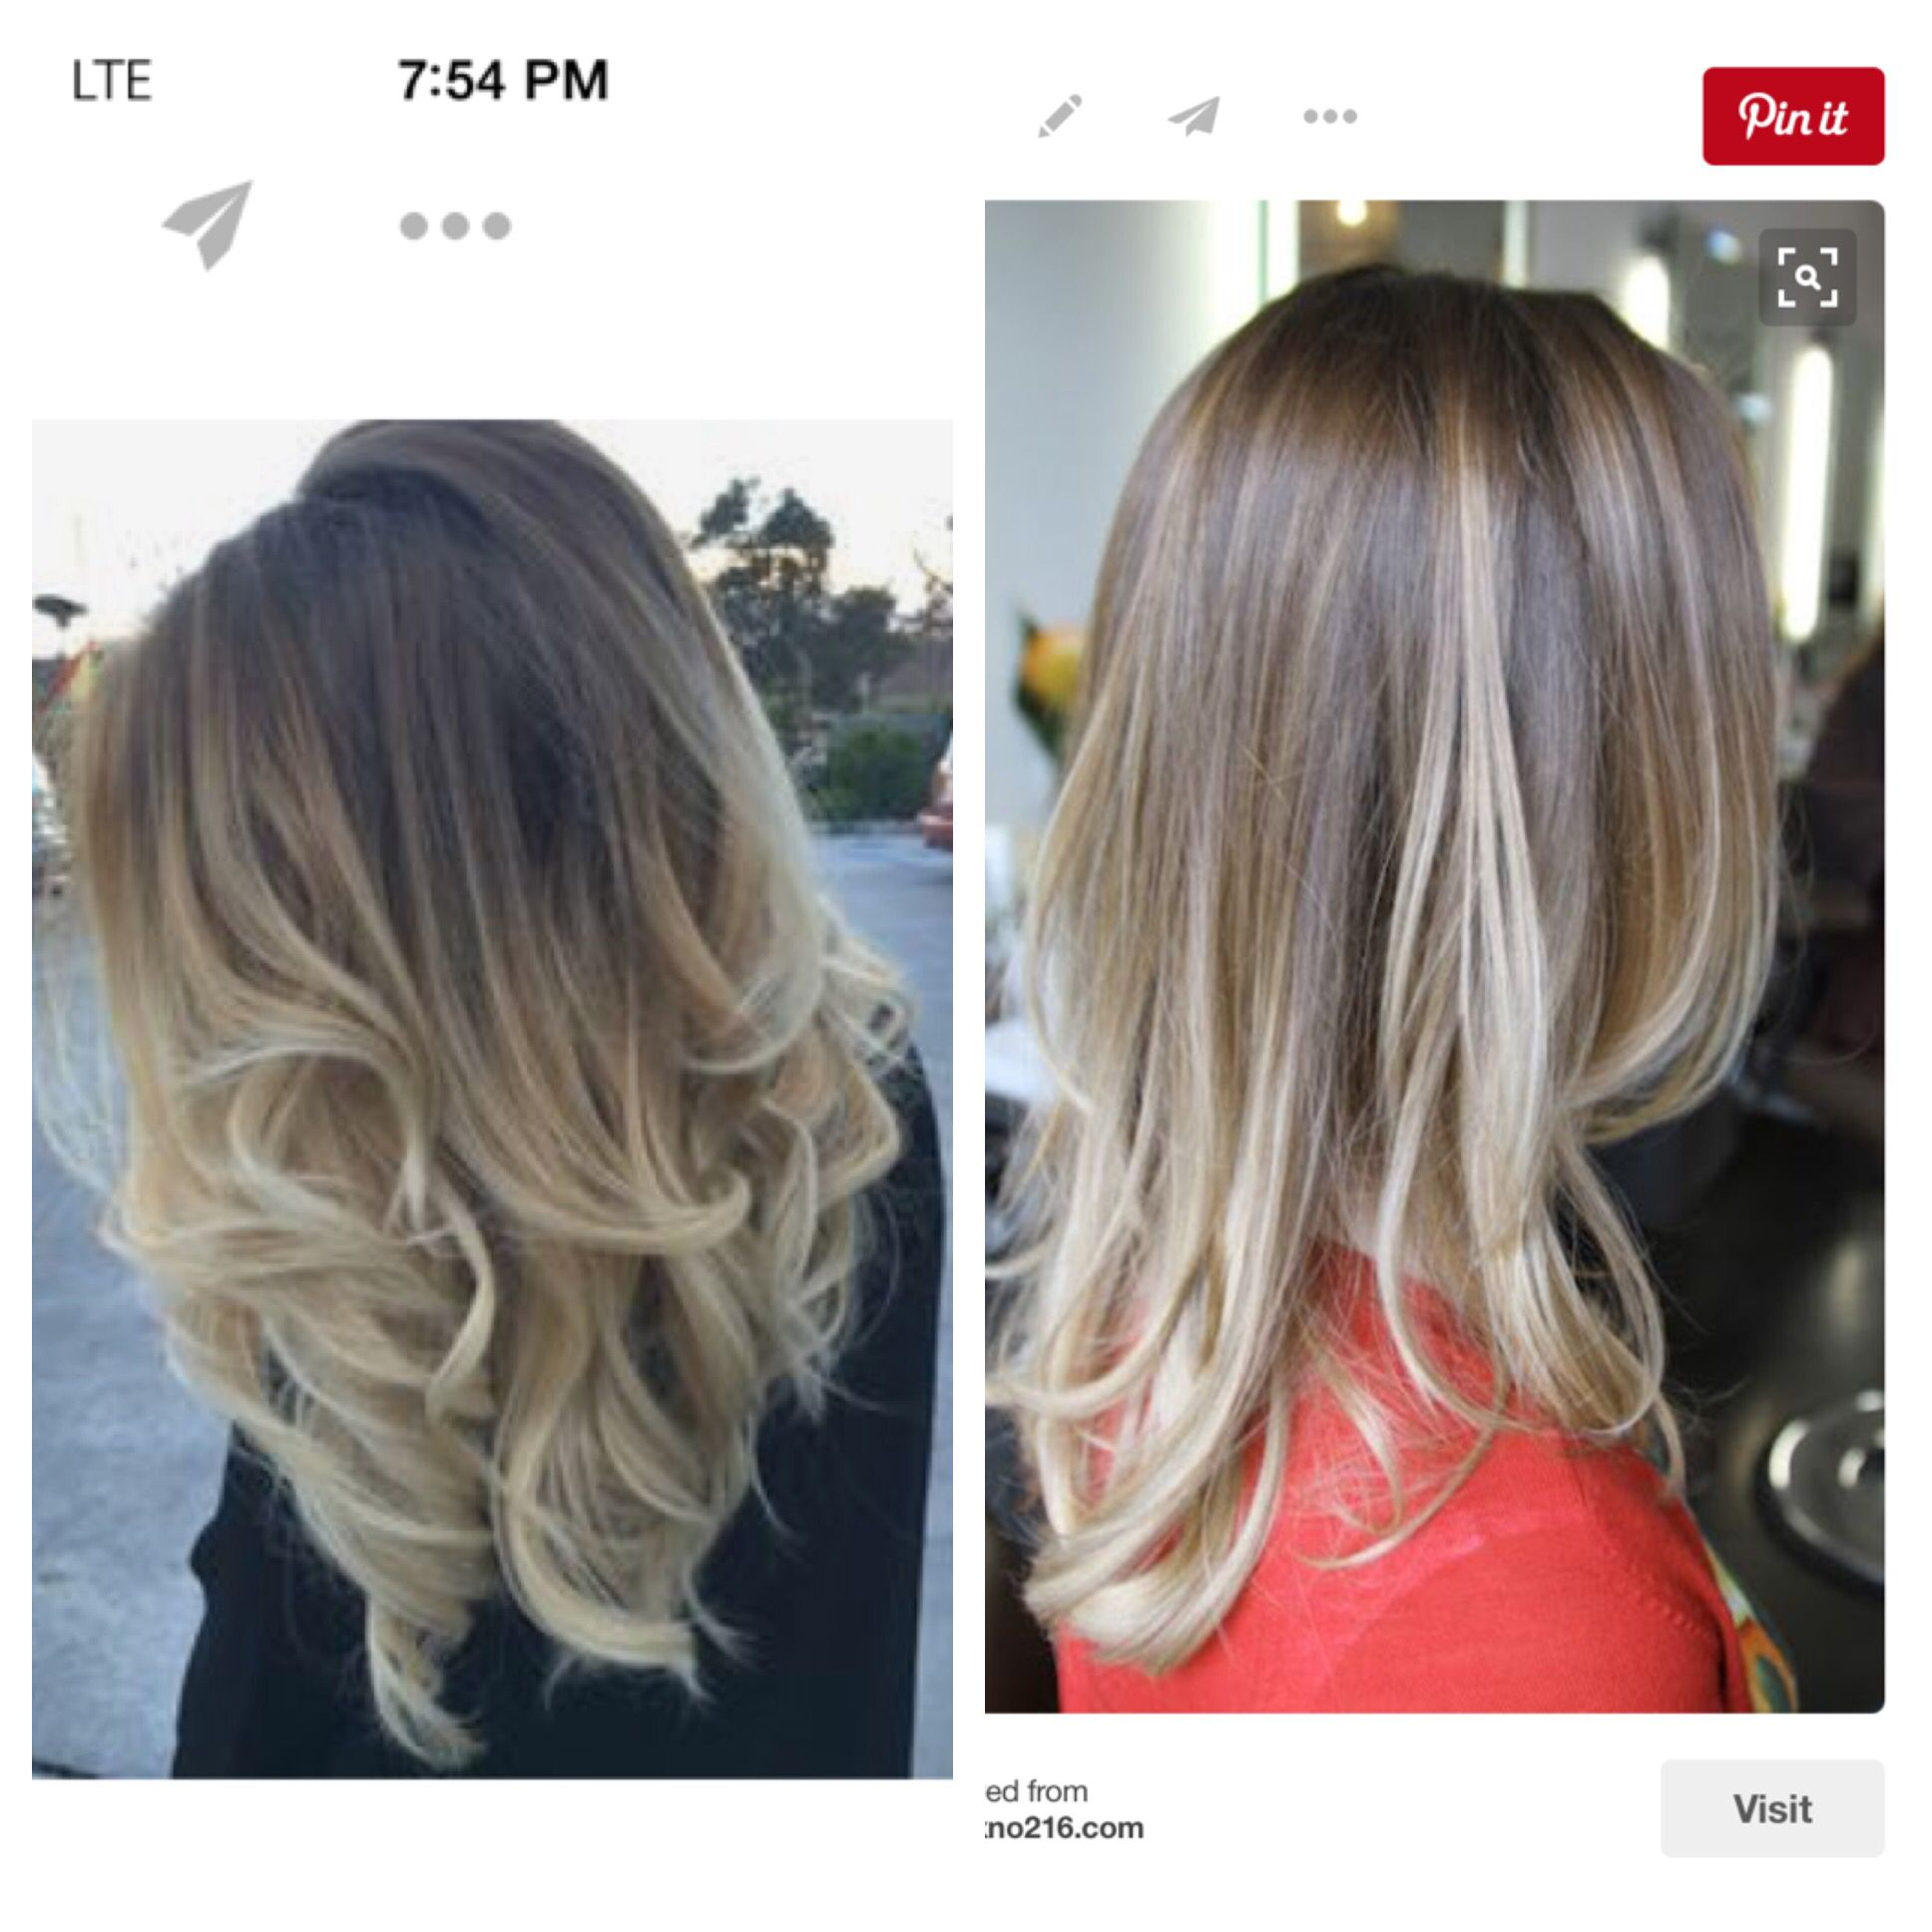 I want something like a combination of these  Soooo excited to get this done!